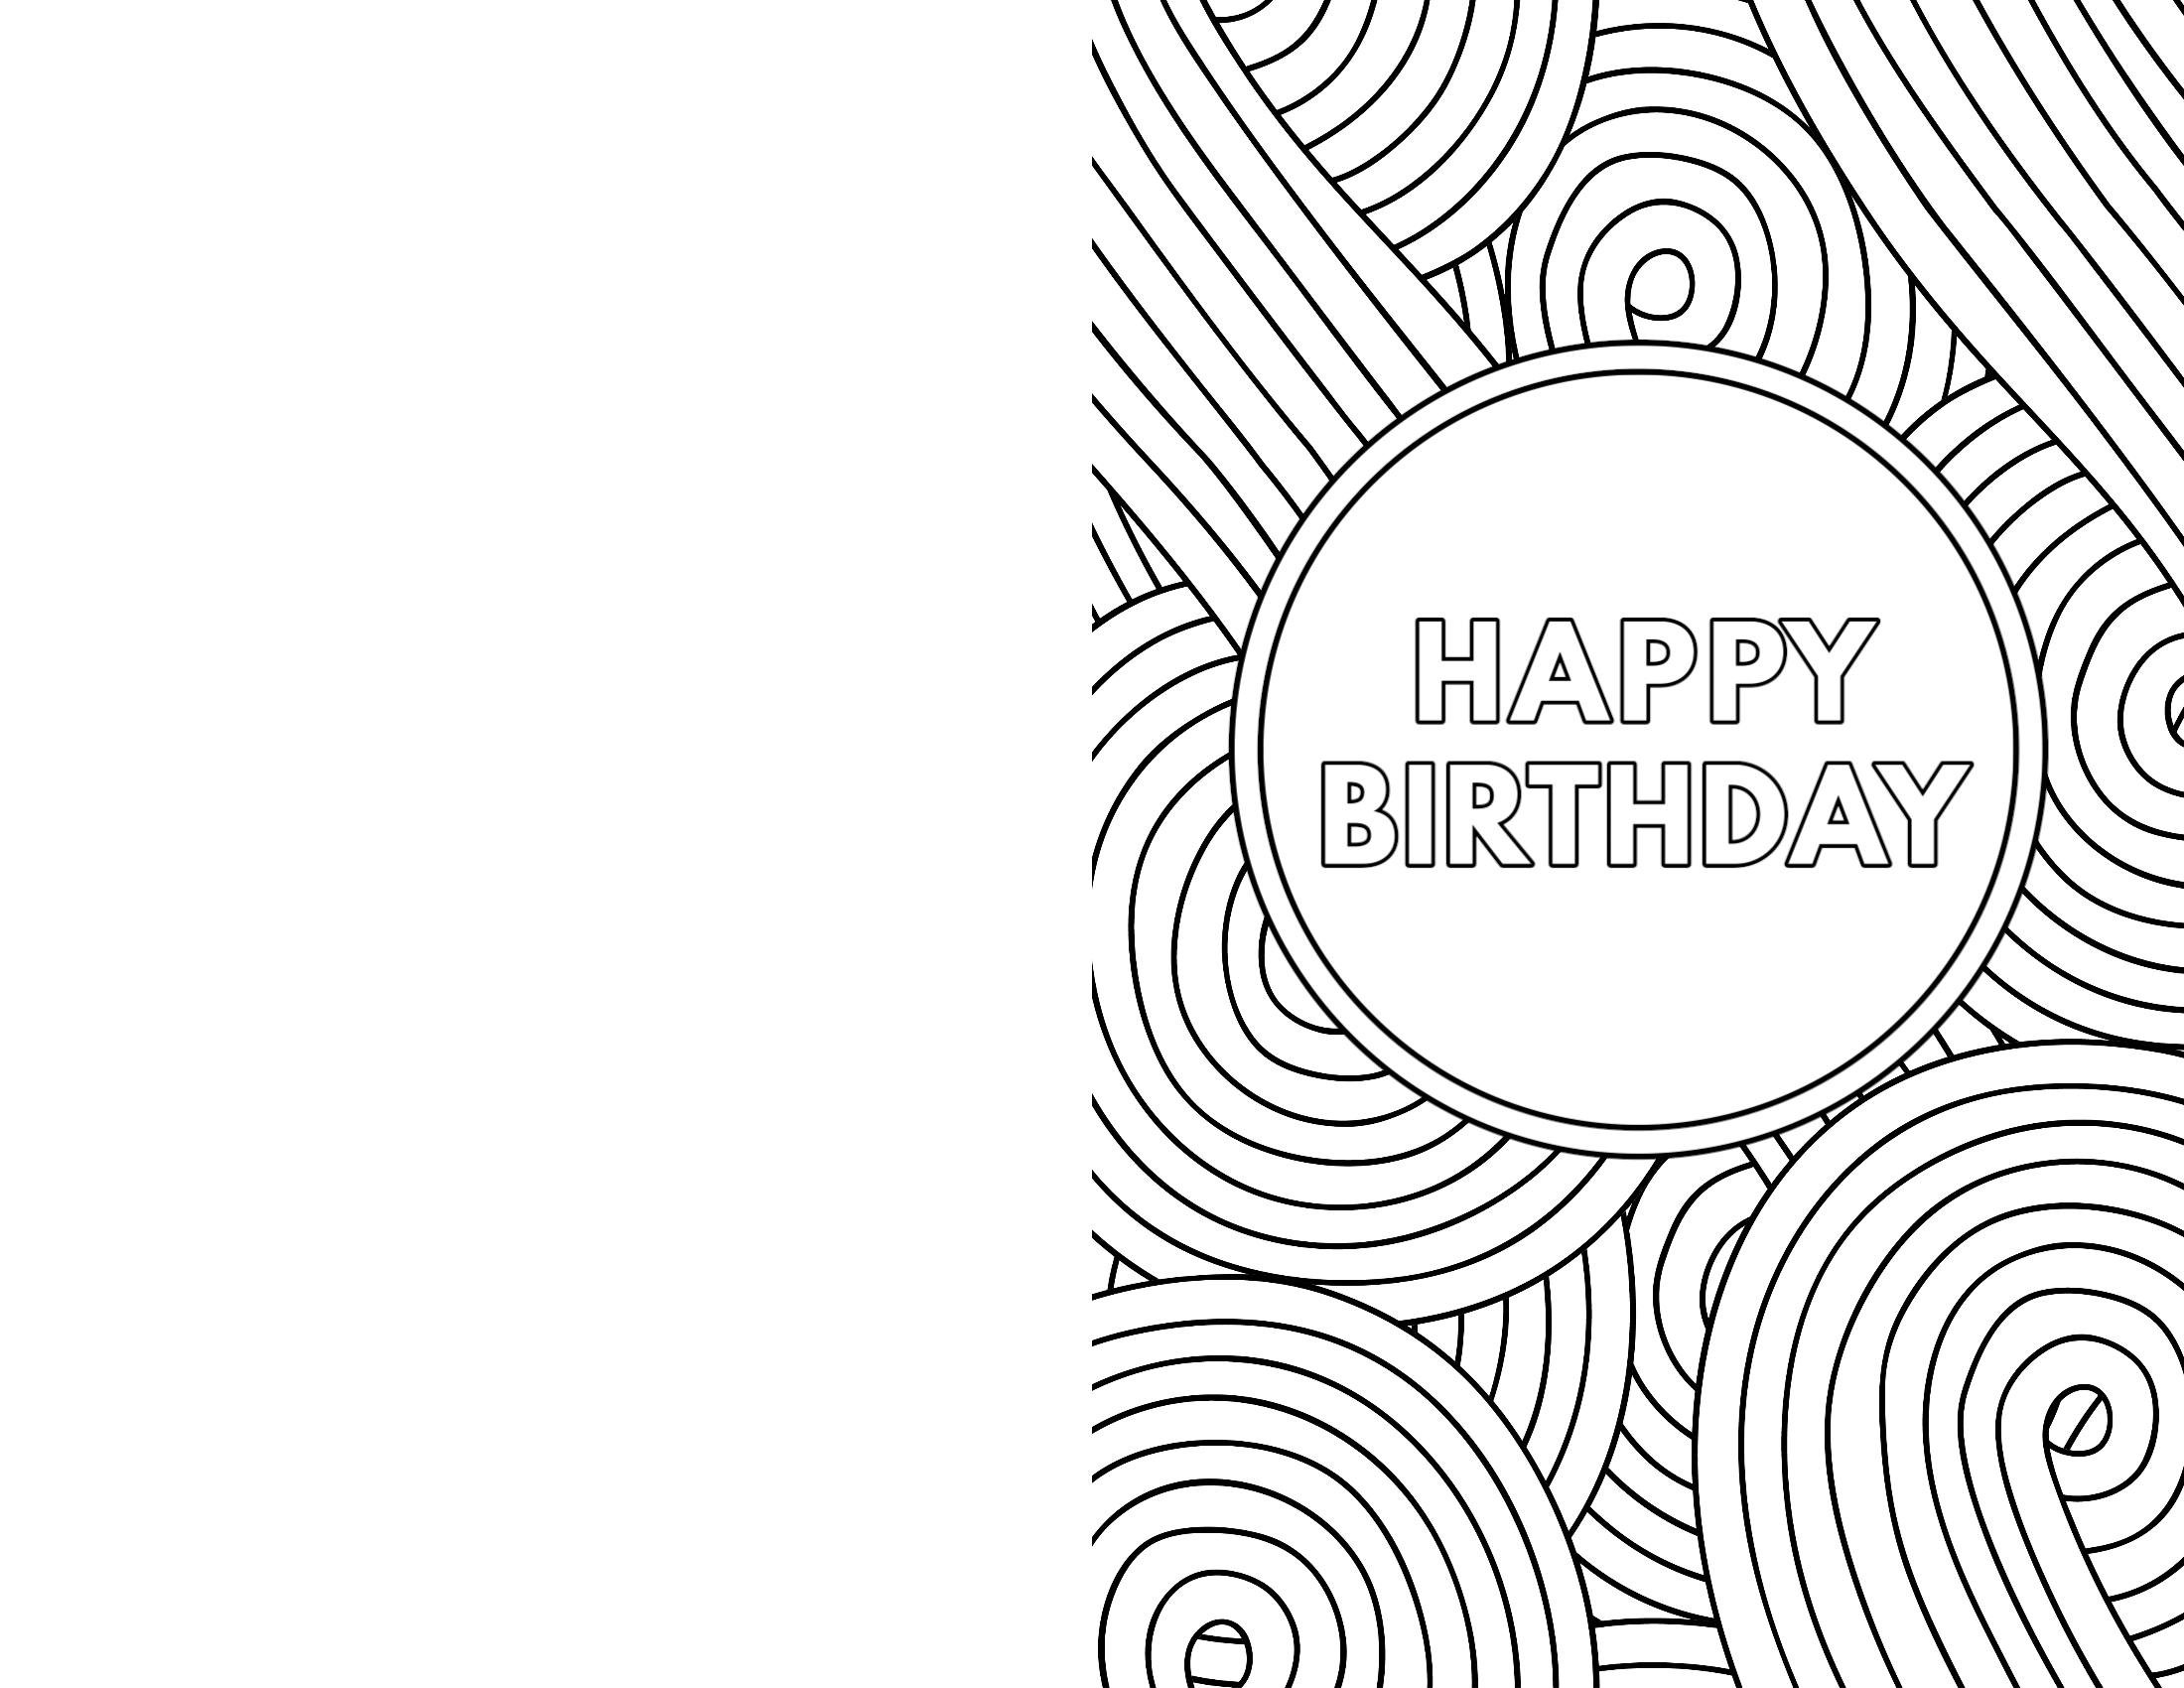 Eloquent image with regard to black and white printable birthday cards